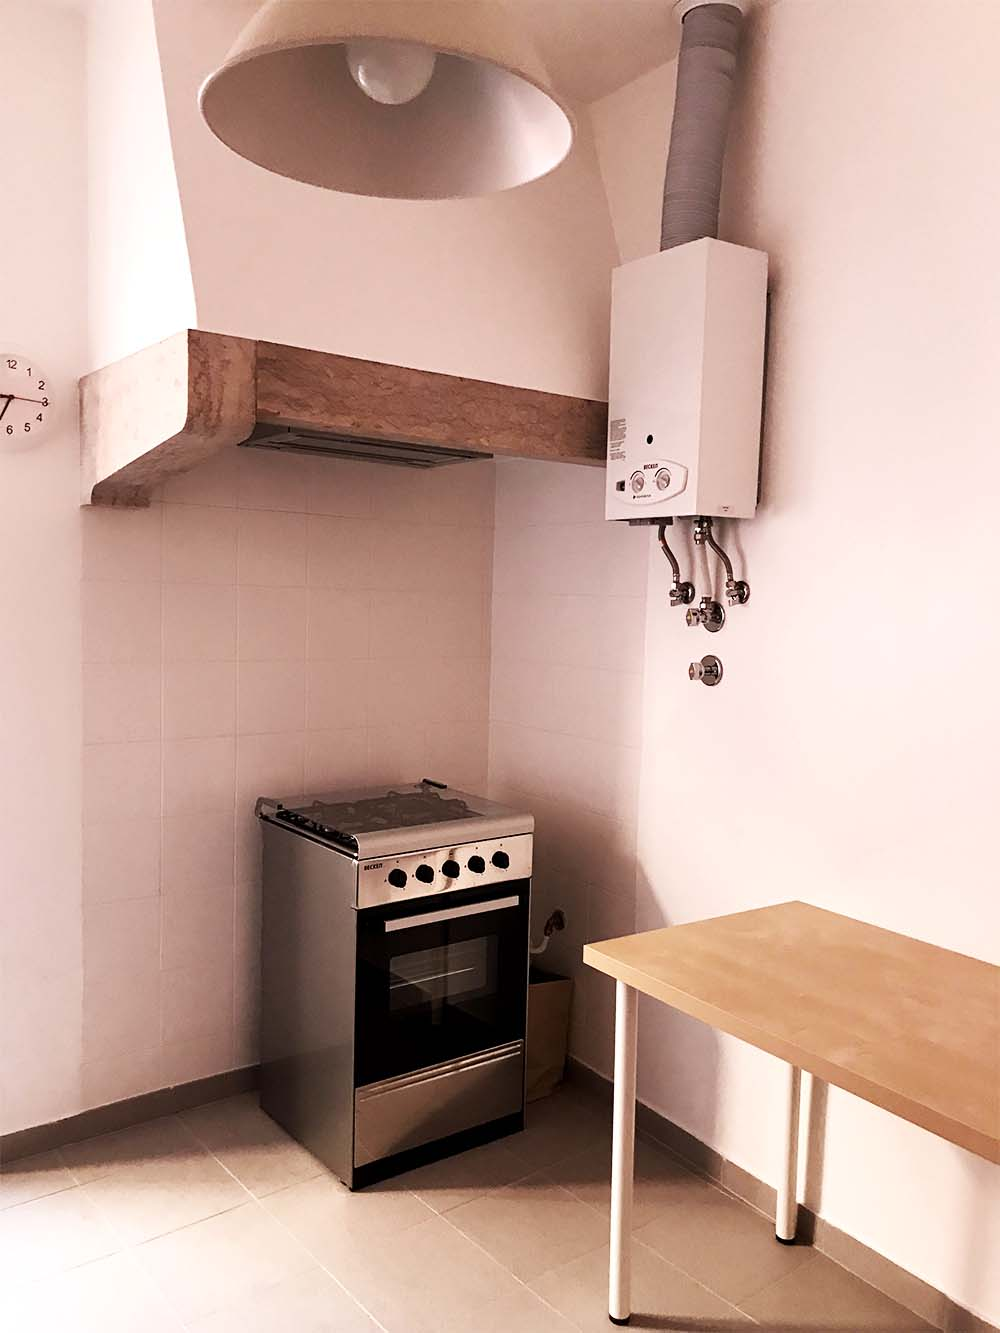 We'll add a counter-top to surround the oven and replace the freestanding table.